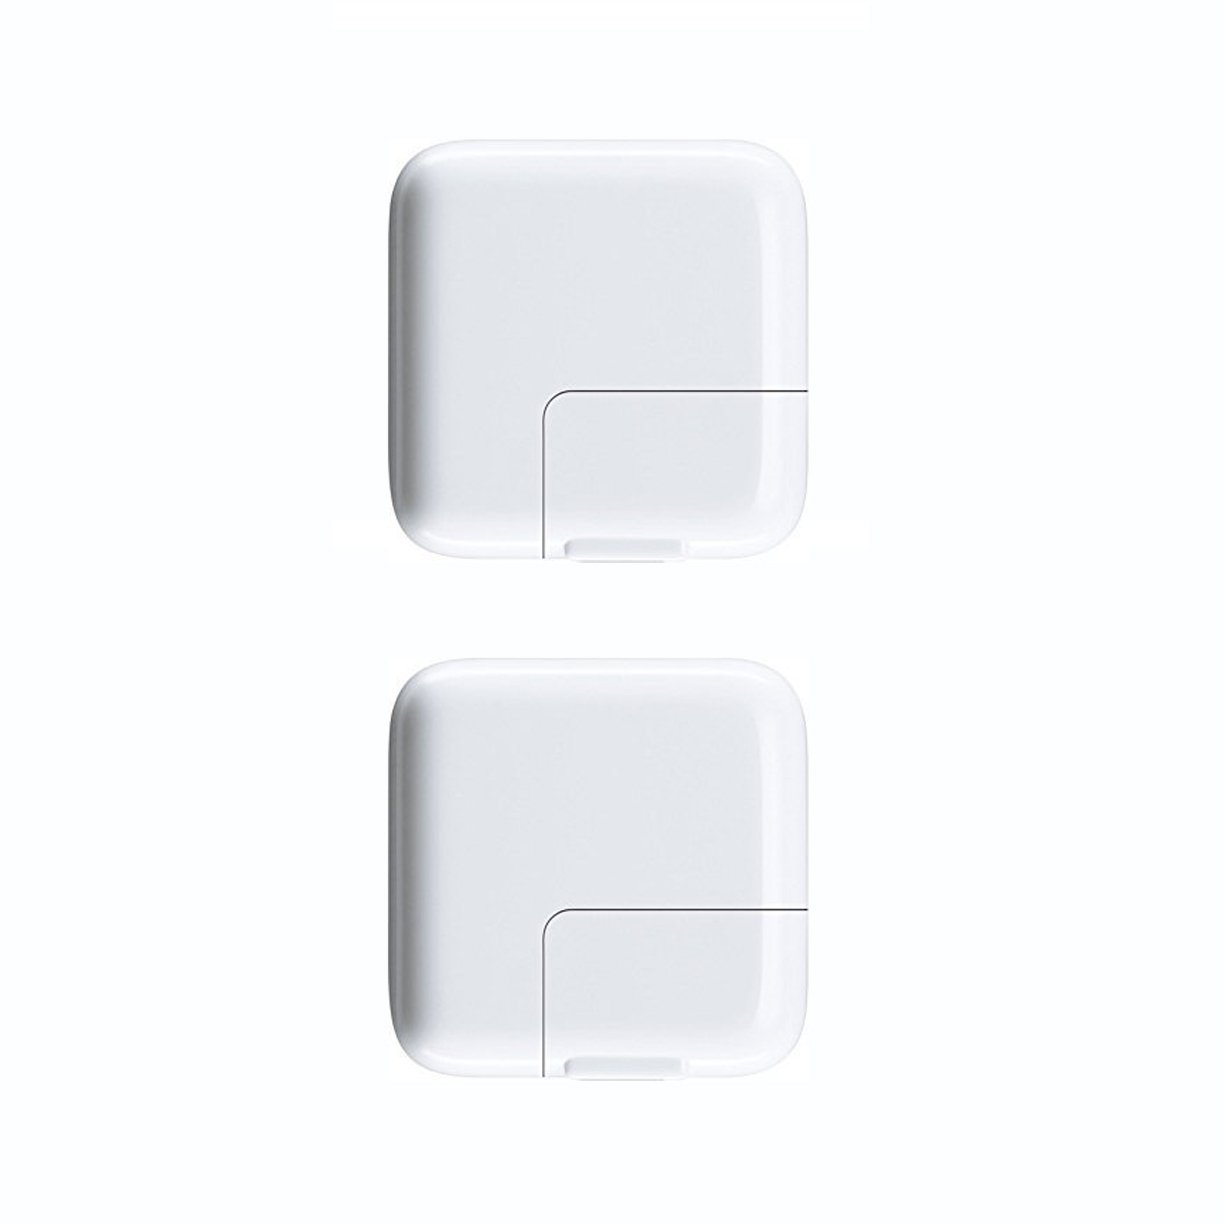 Apple 12W USB Power Adapter (2-Pack)